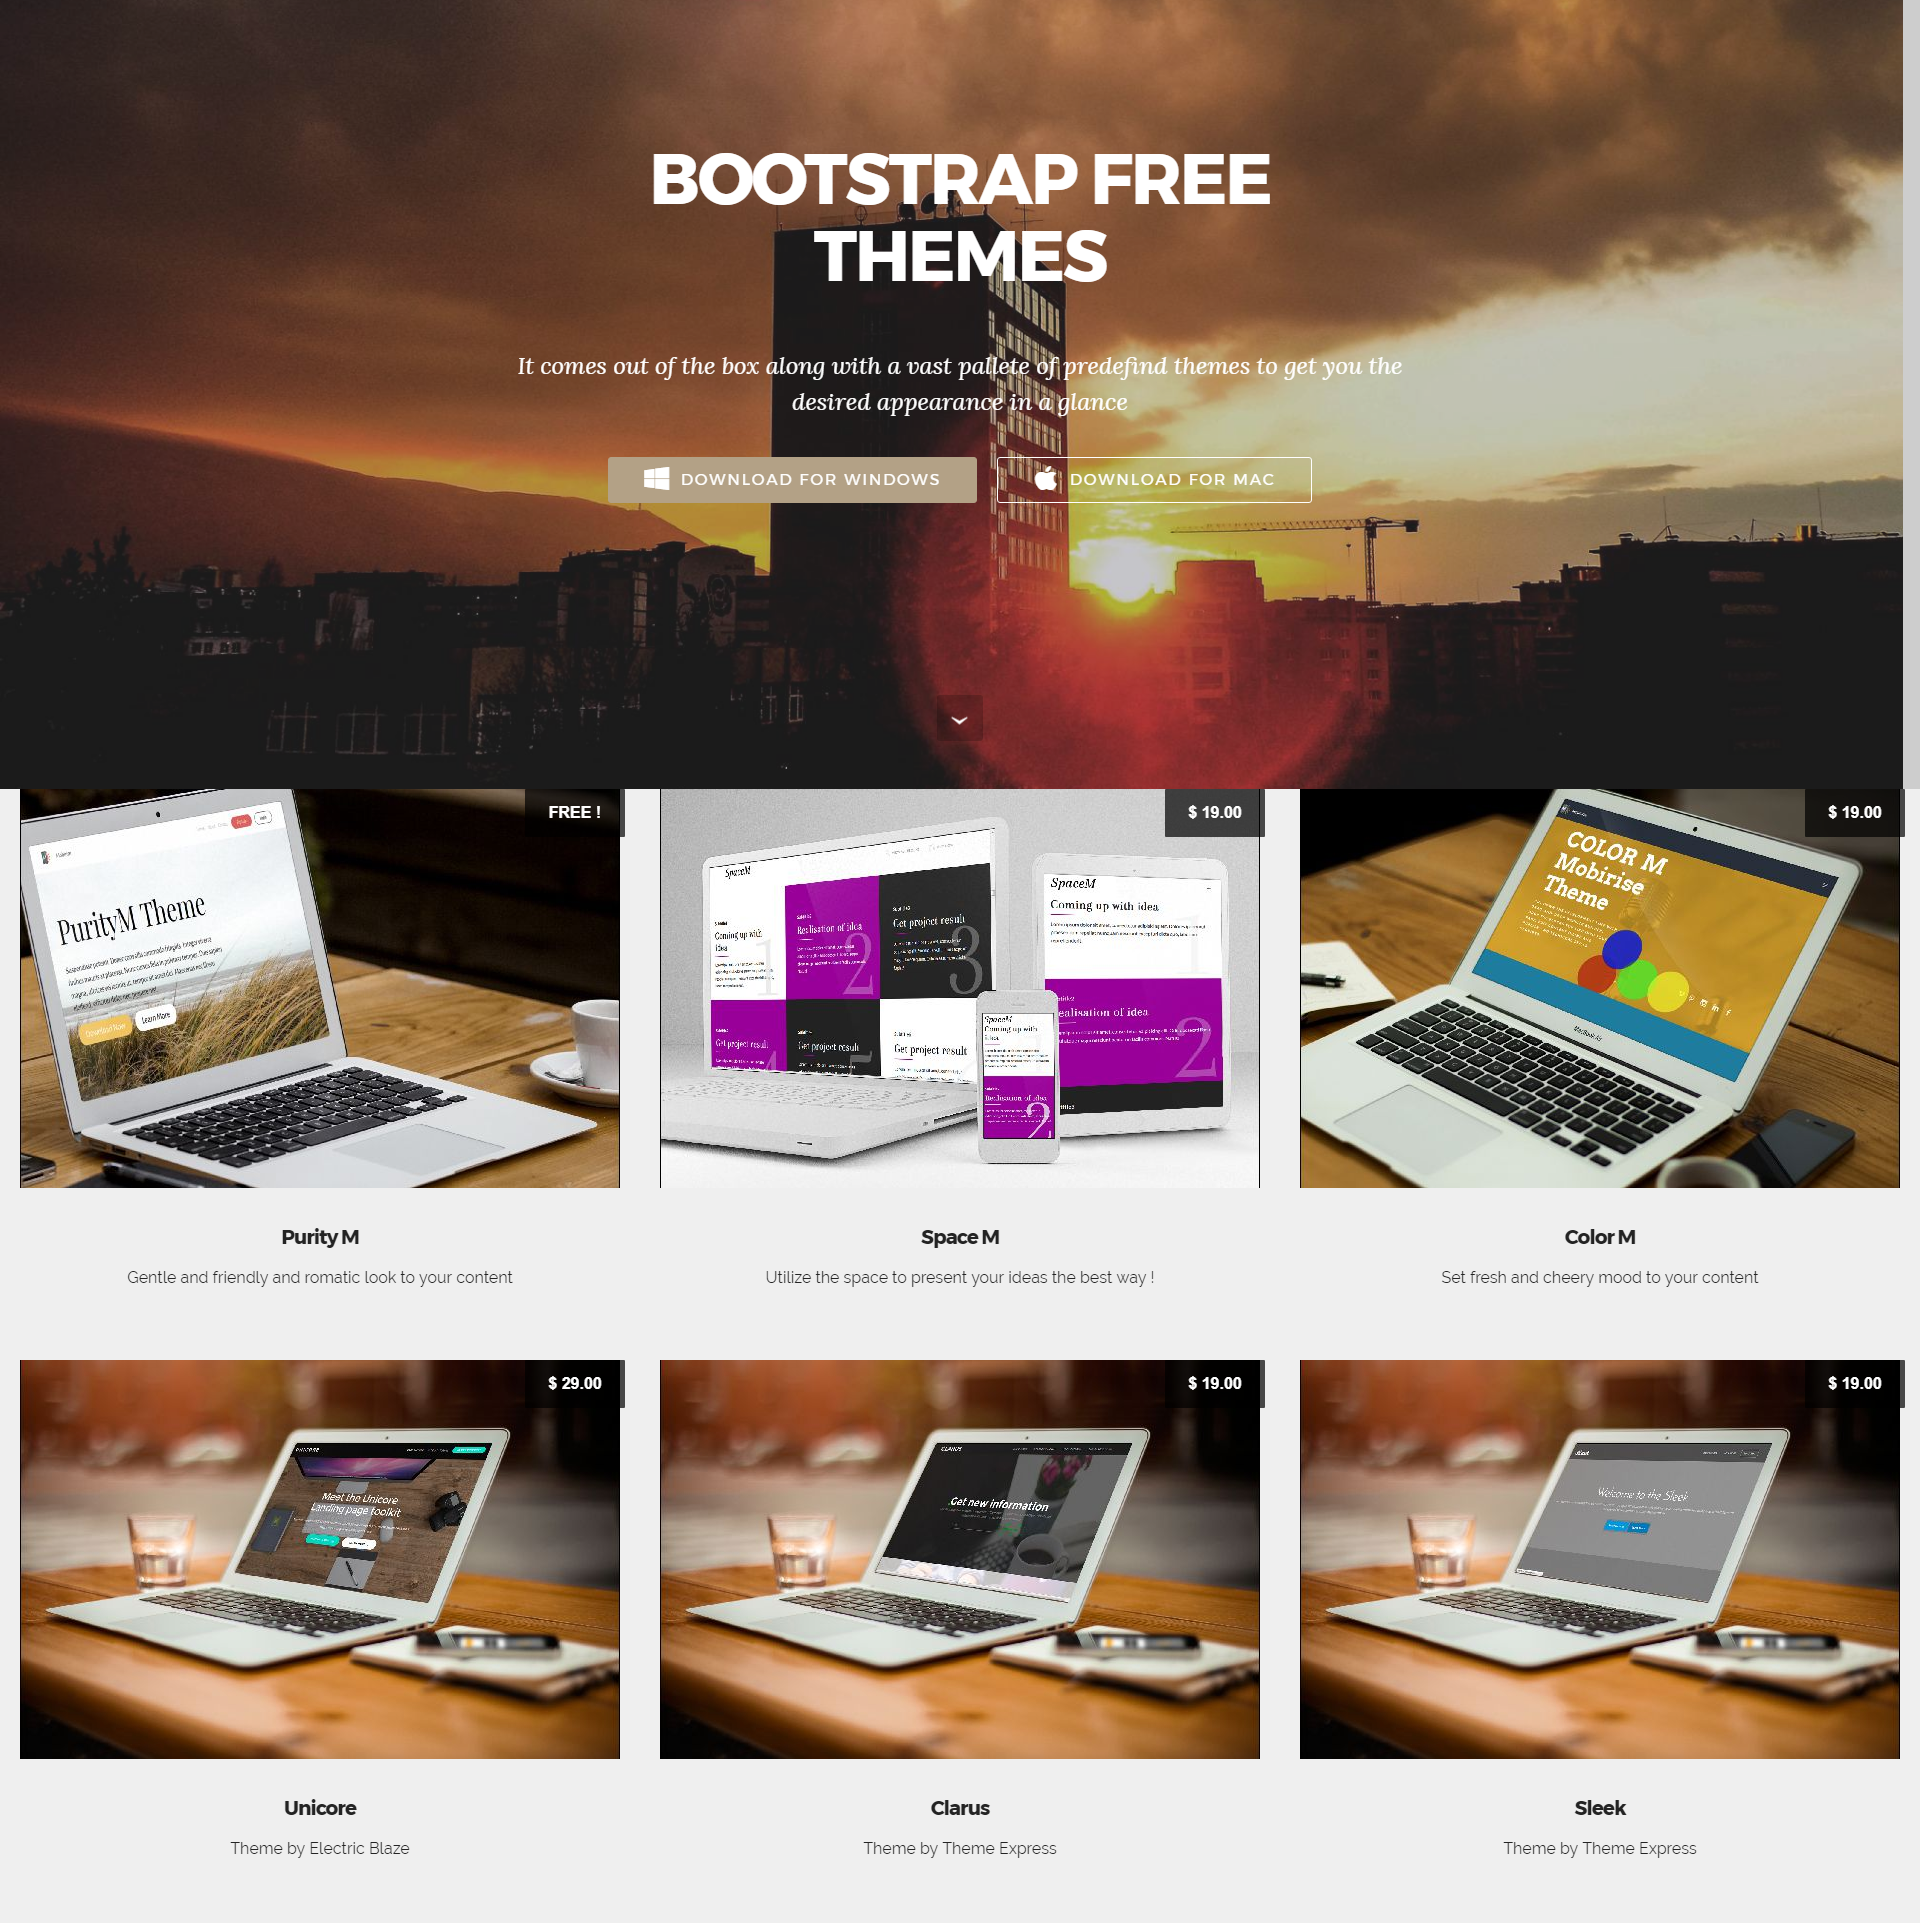 Free Download Bootstrap Mobile-friendly Templates